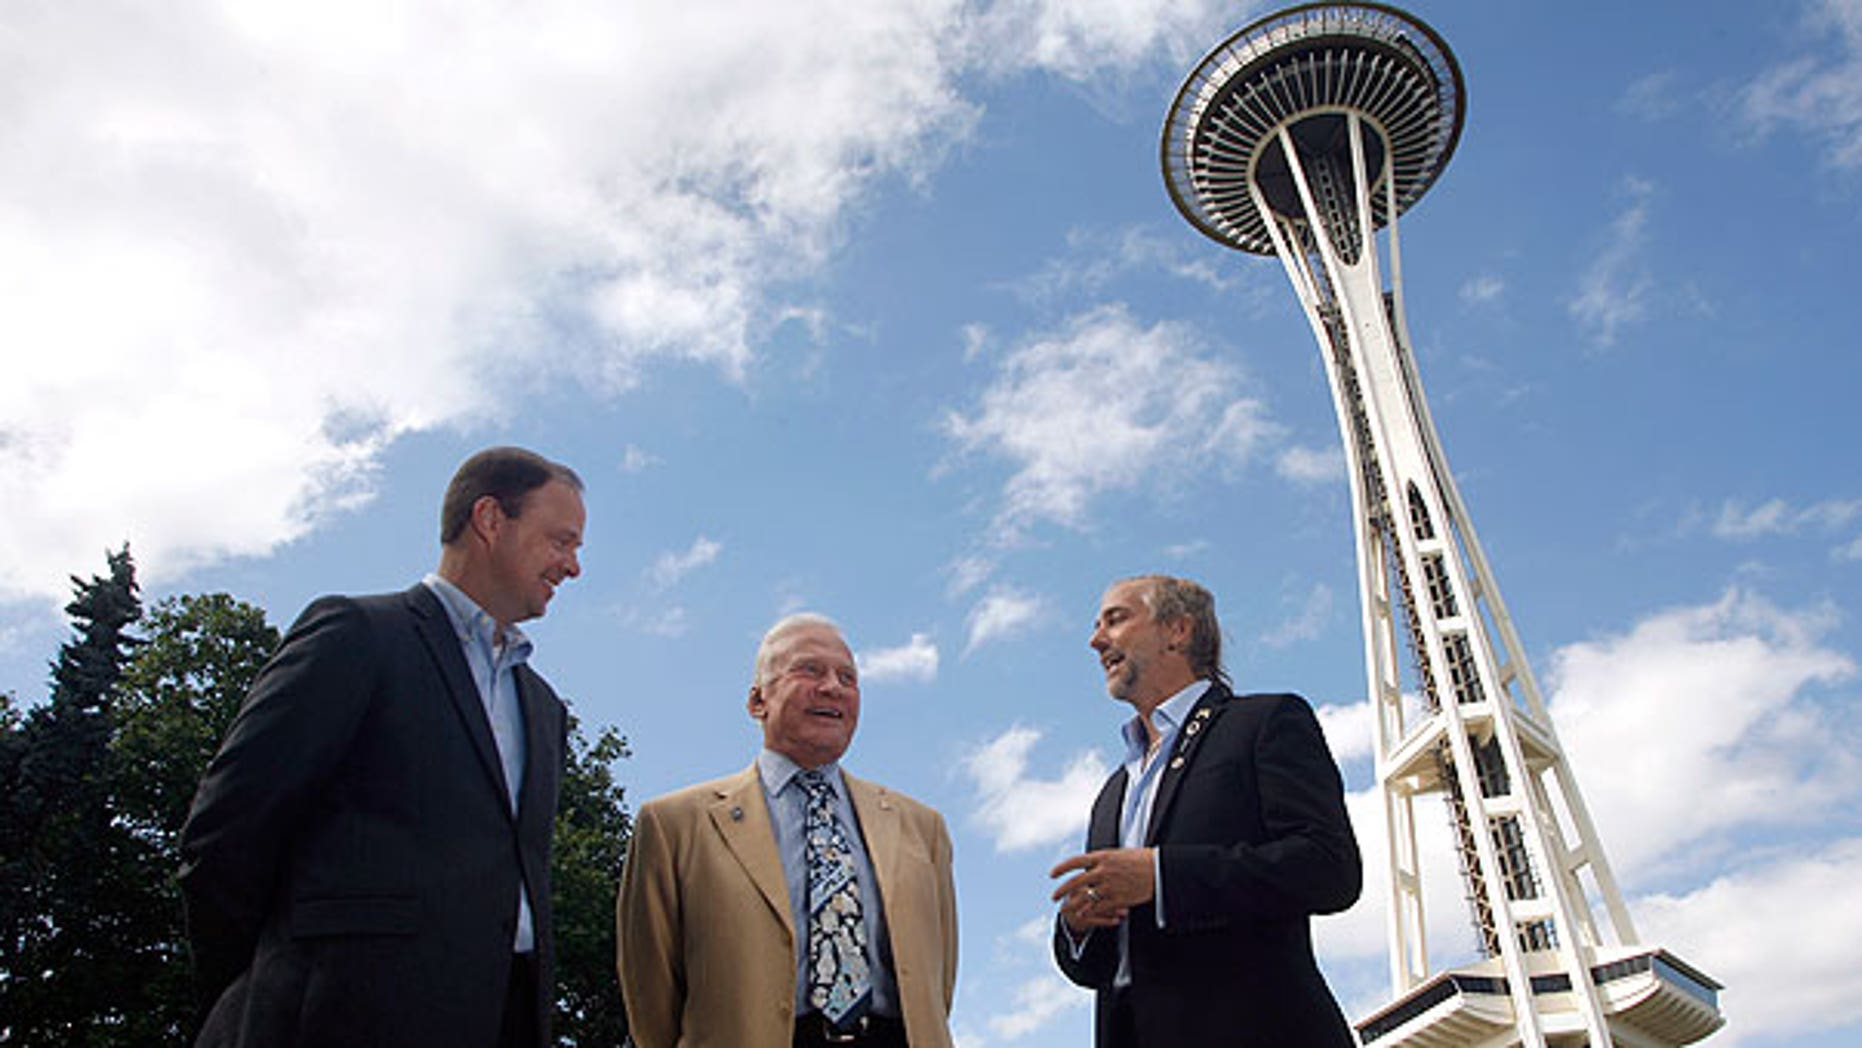 July 31: Buzz Aldrin, former astronaut (center), and Richard Garriott, first second-generation space traveler (right), talk about space exploration outside the Space Needle in Seattle as Ron Sevart, CEO of the Space Needle, listens in.